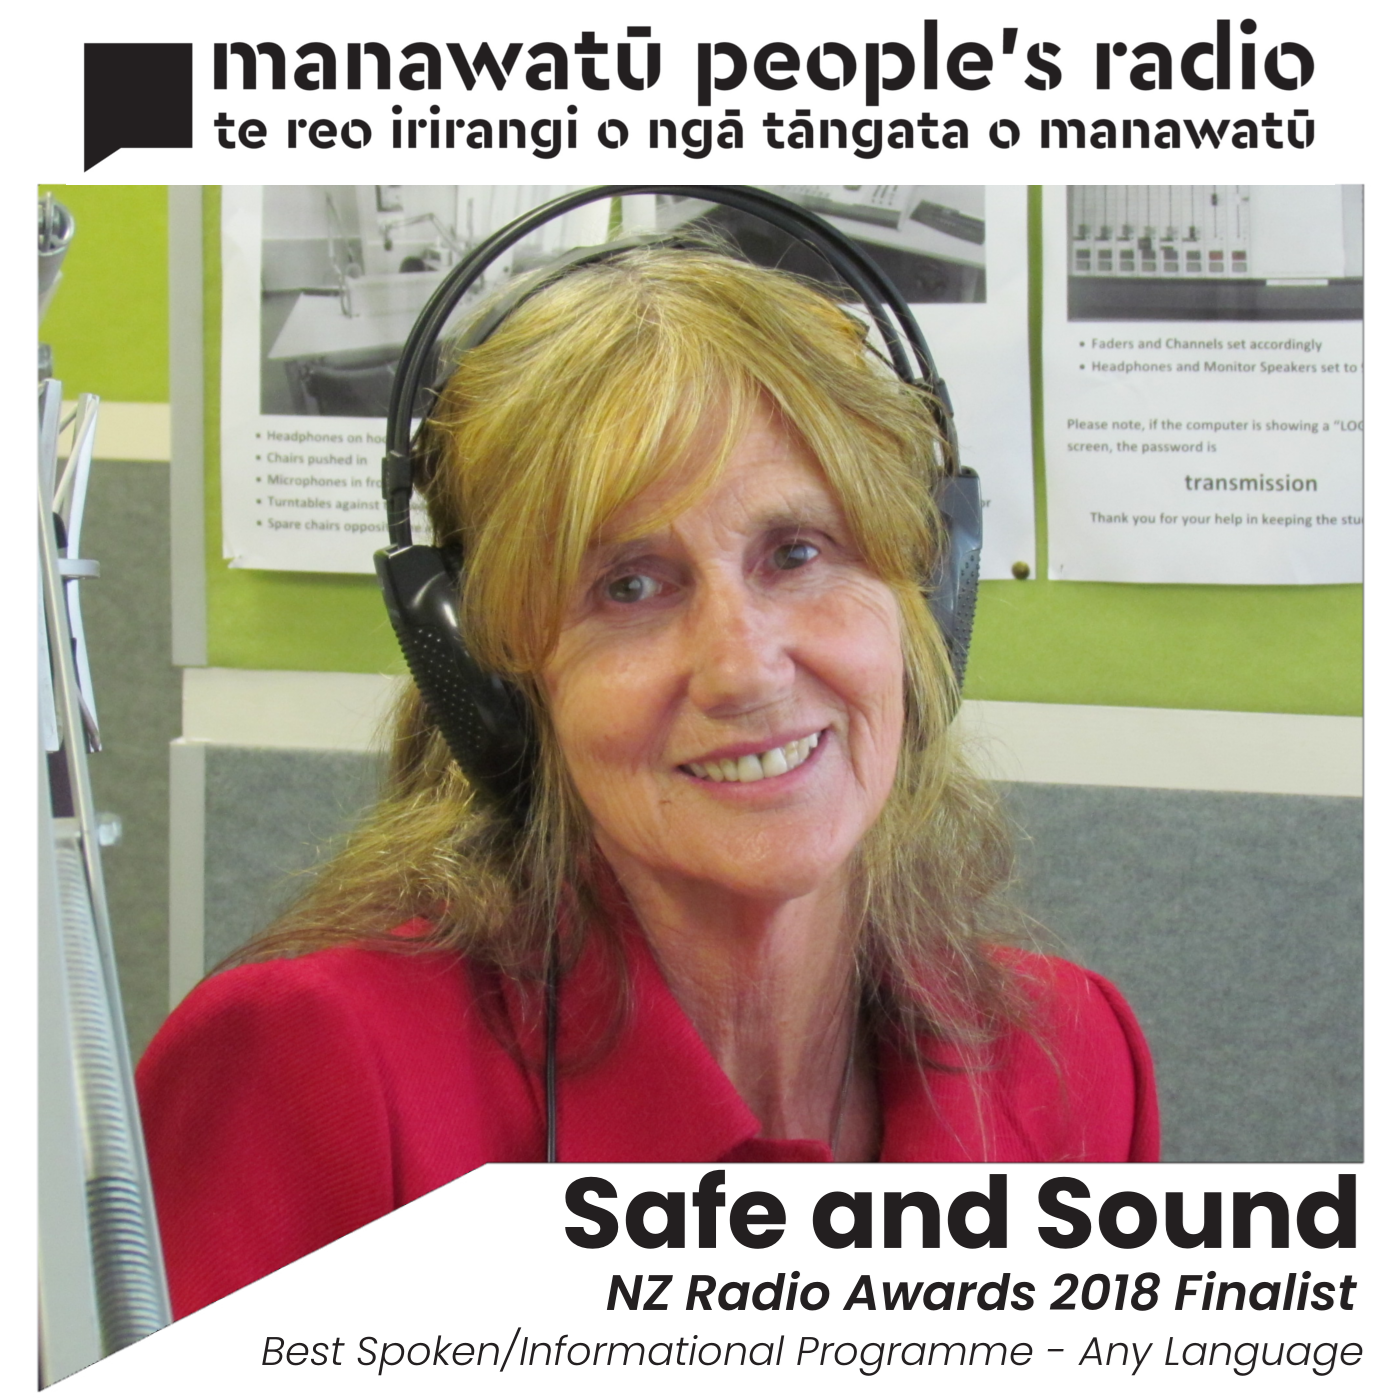 https://static.accessradio.org/StationFolder/manawatu/Images/MPR - SandraKyle1.png